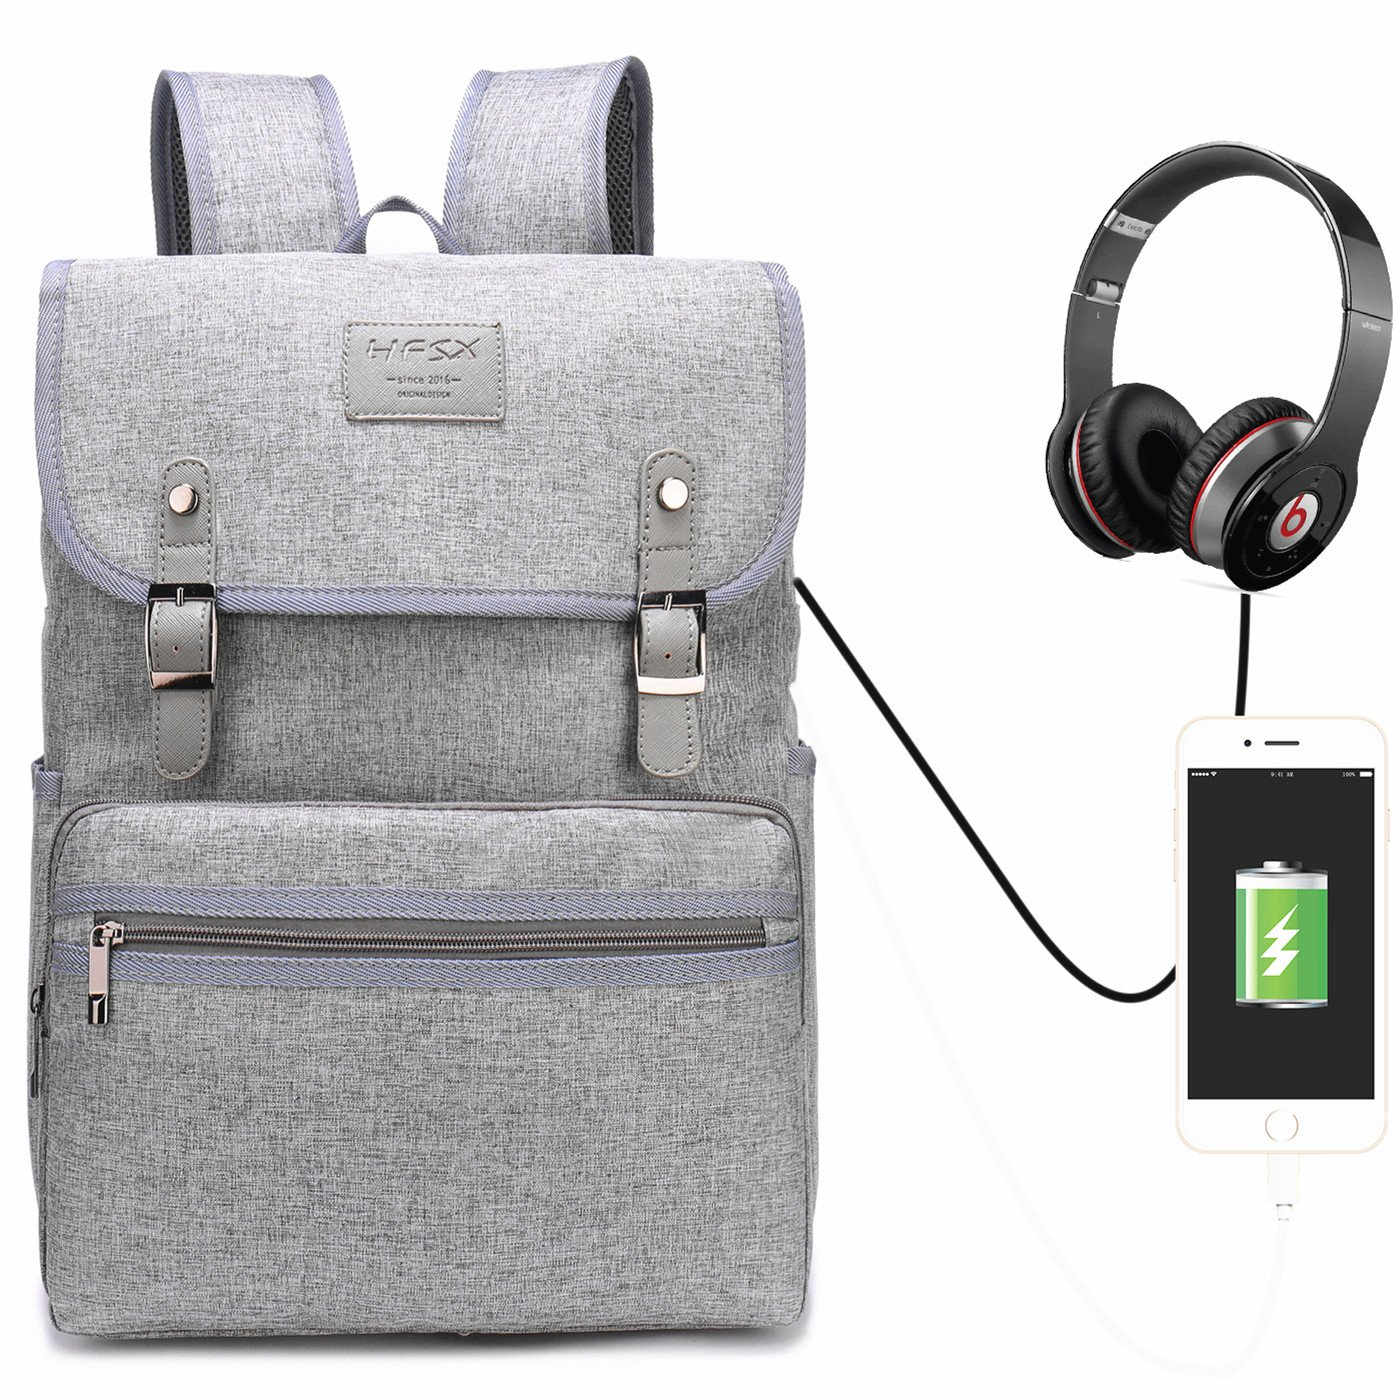 Laptop Backpack Men Women Business Travel Computer Backpack School College Bookbag Stylish Water Resistant Vintage Backpack with USB Port Fashion GREY Fits 15.6 Inch Laptop and Notebook